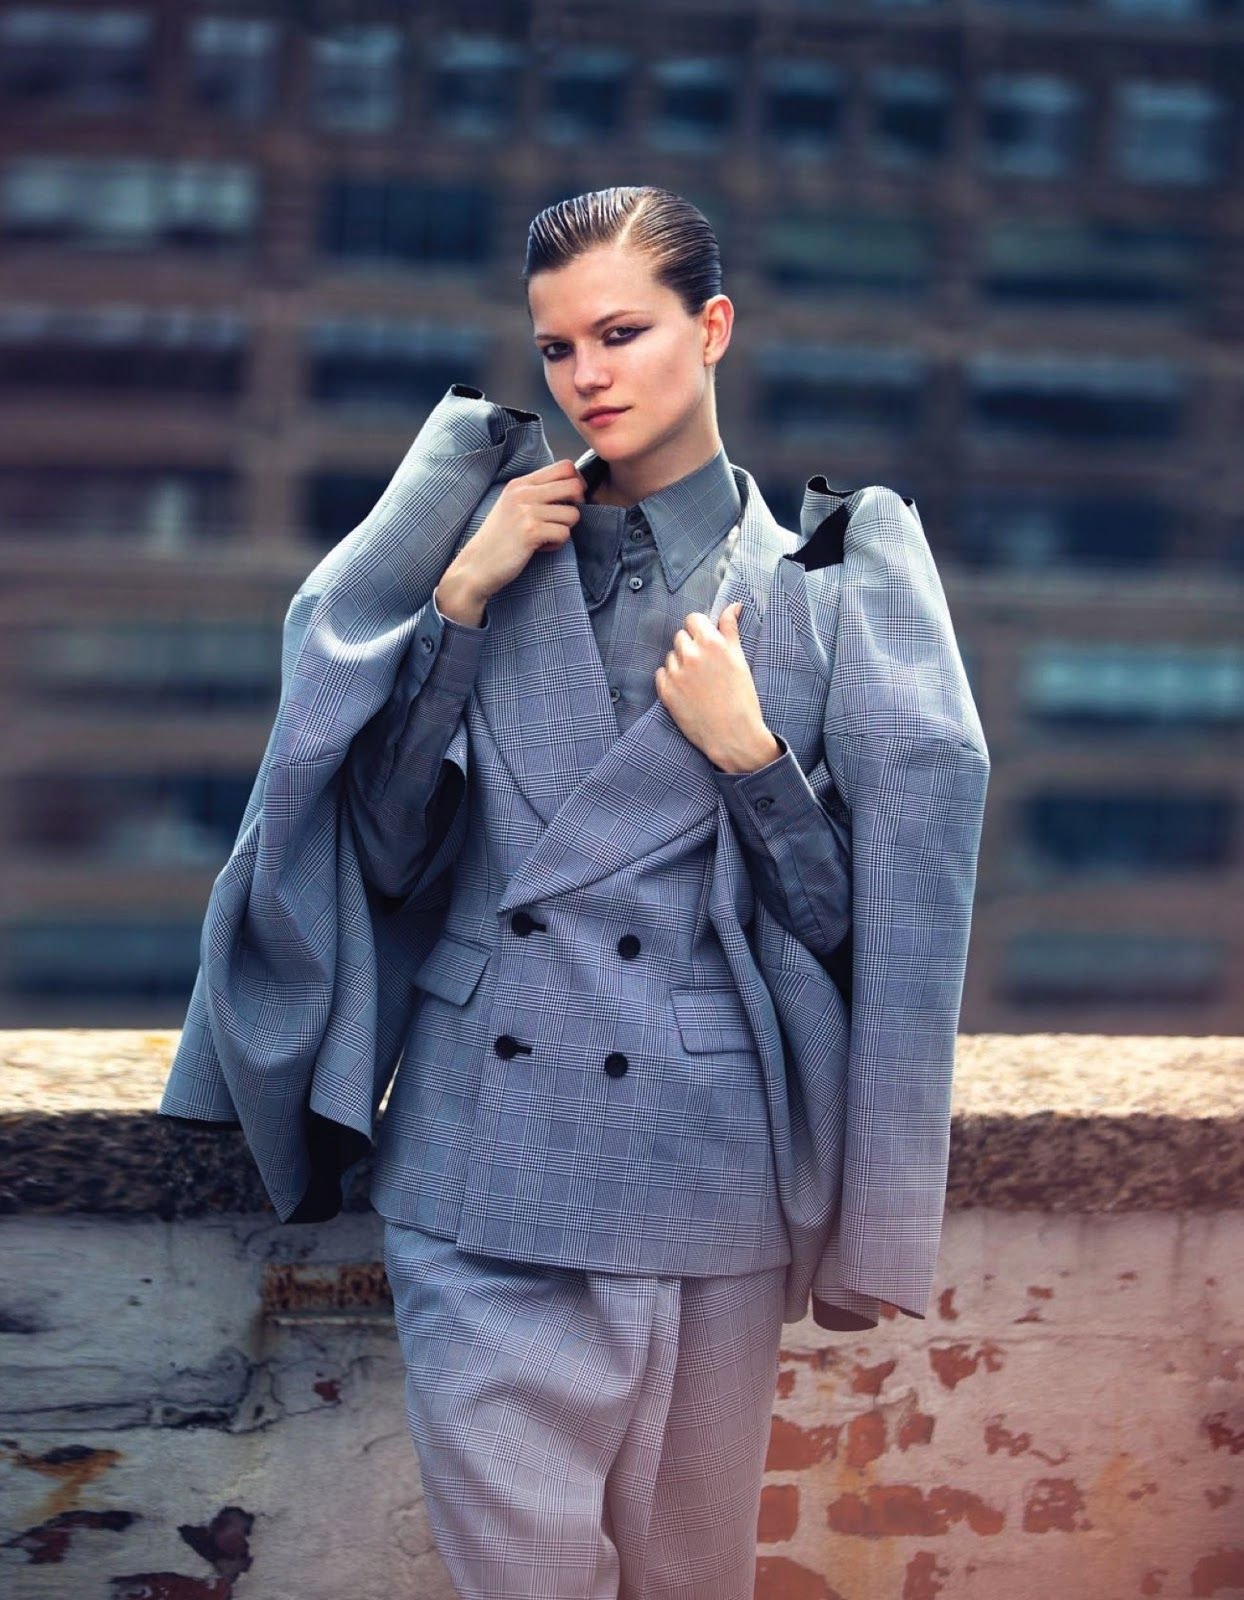 visual optimism; fashion editorials, shows, campaigns & more!: masculine rhyme: kasia struss by david bellemere for vogue thailand august 2013